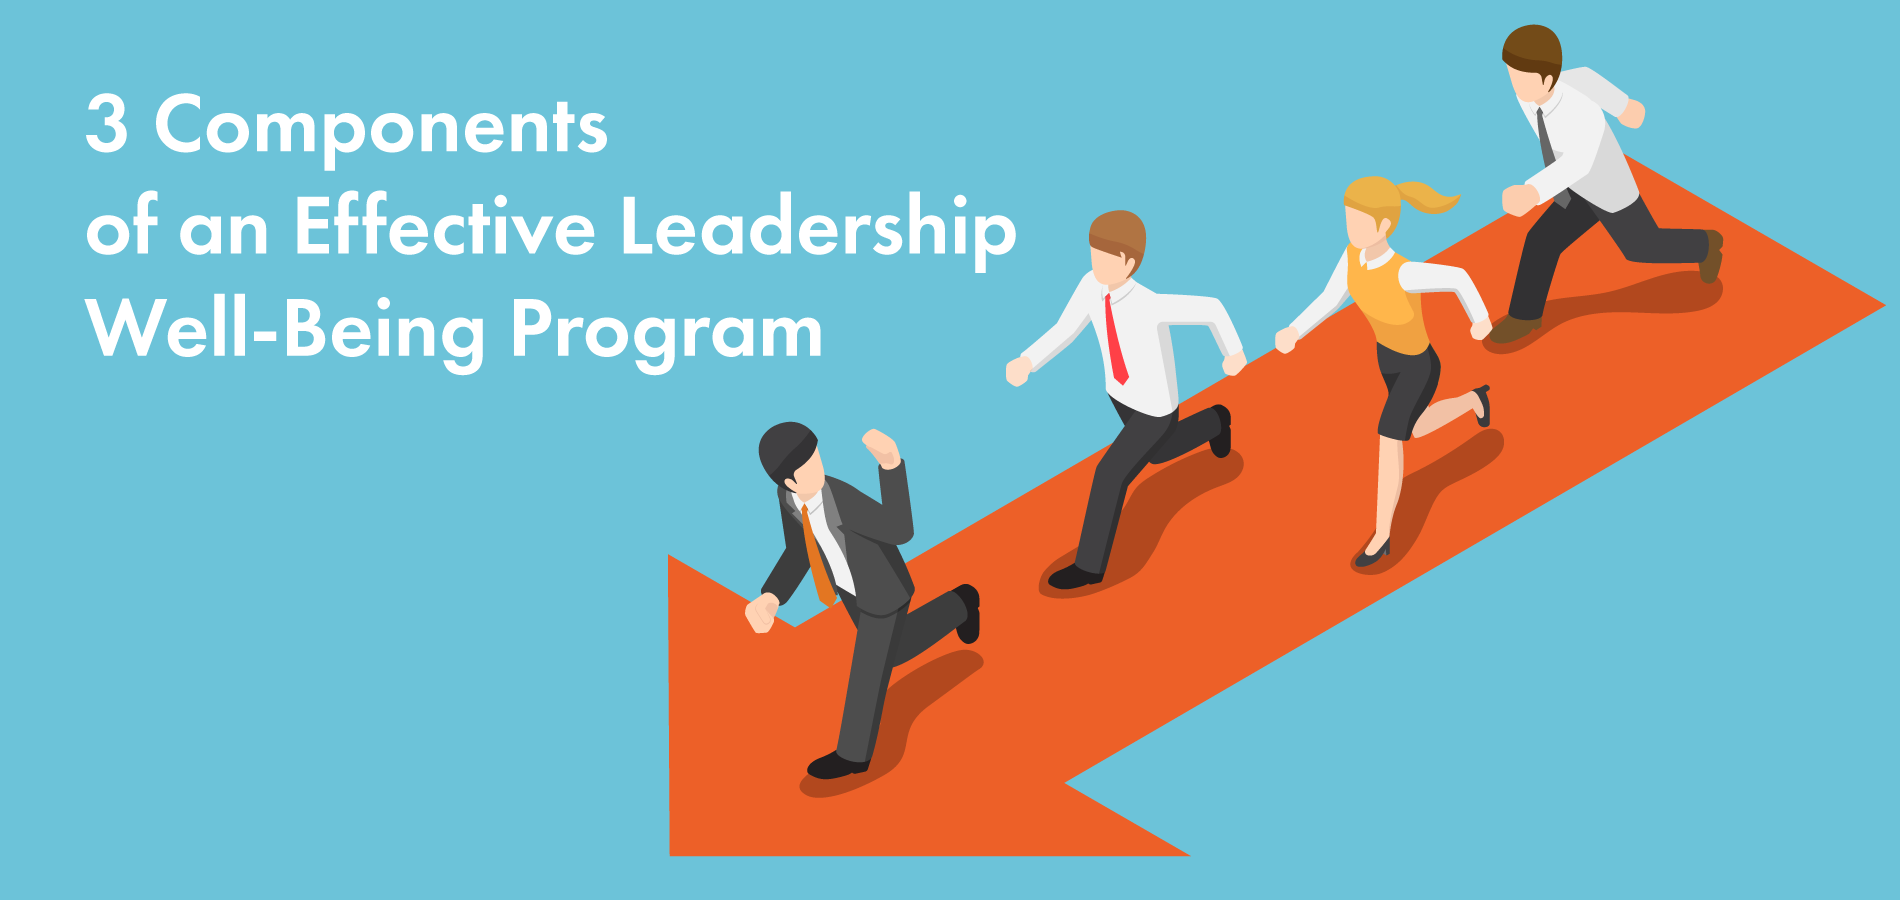 3 Components of an Effective Leadership Well-Being Program